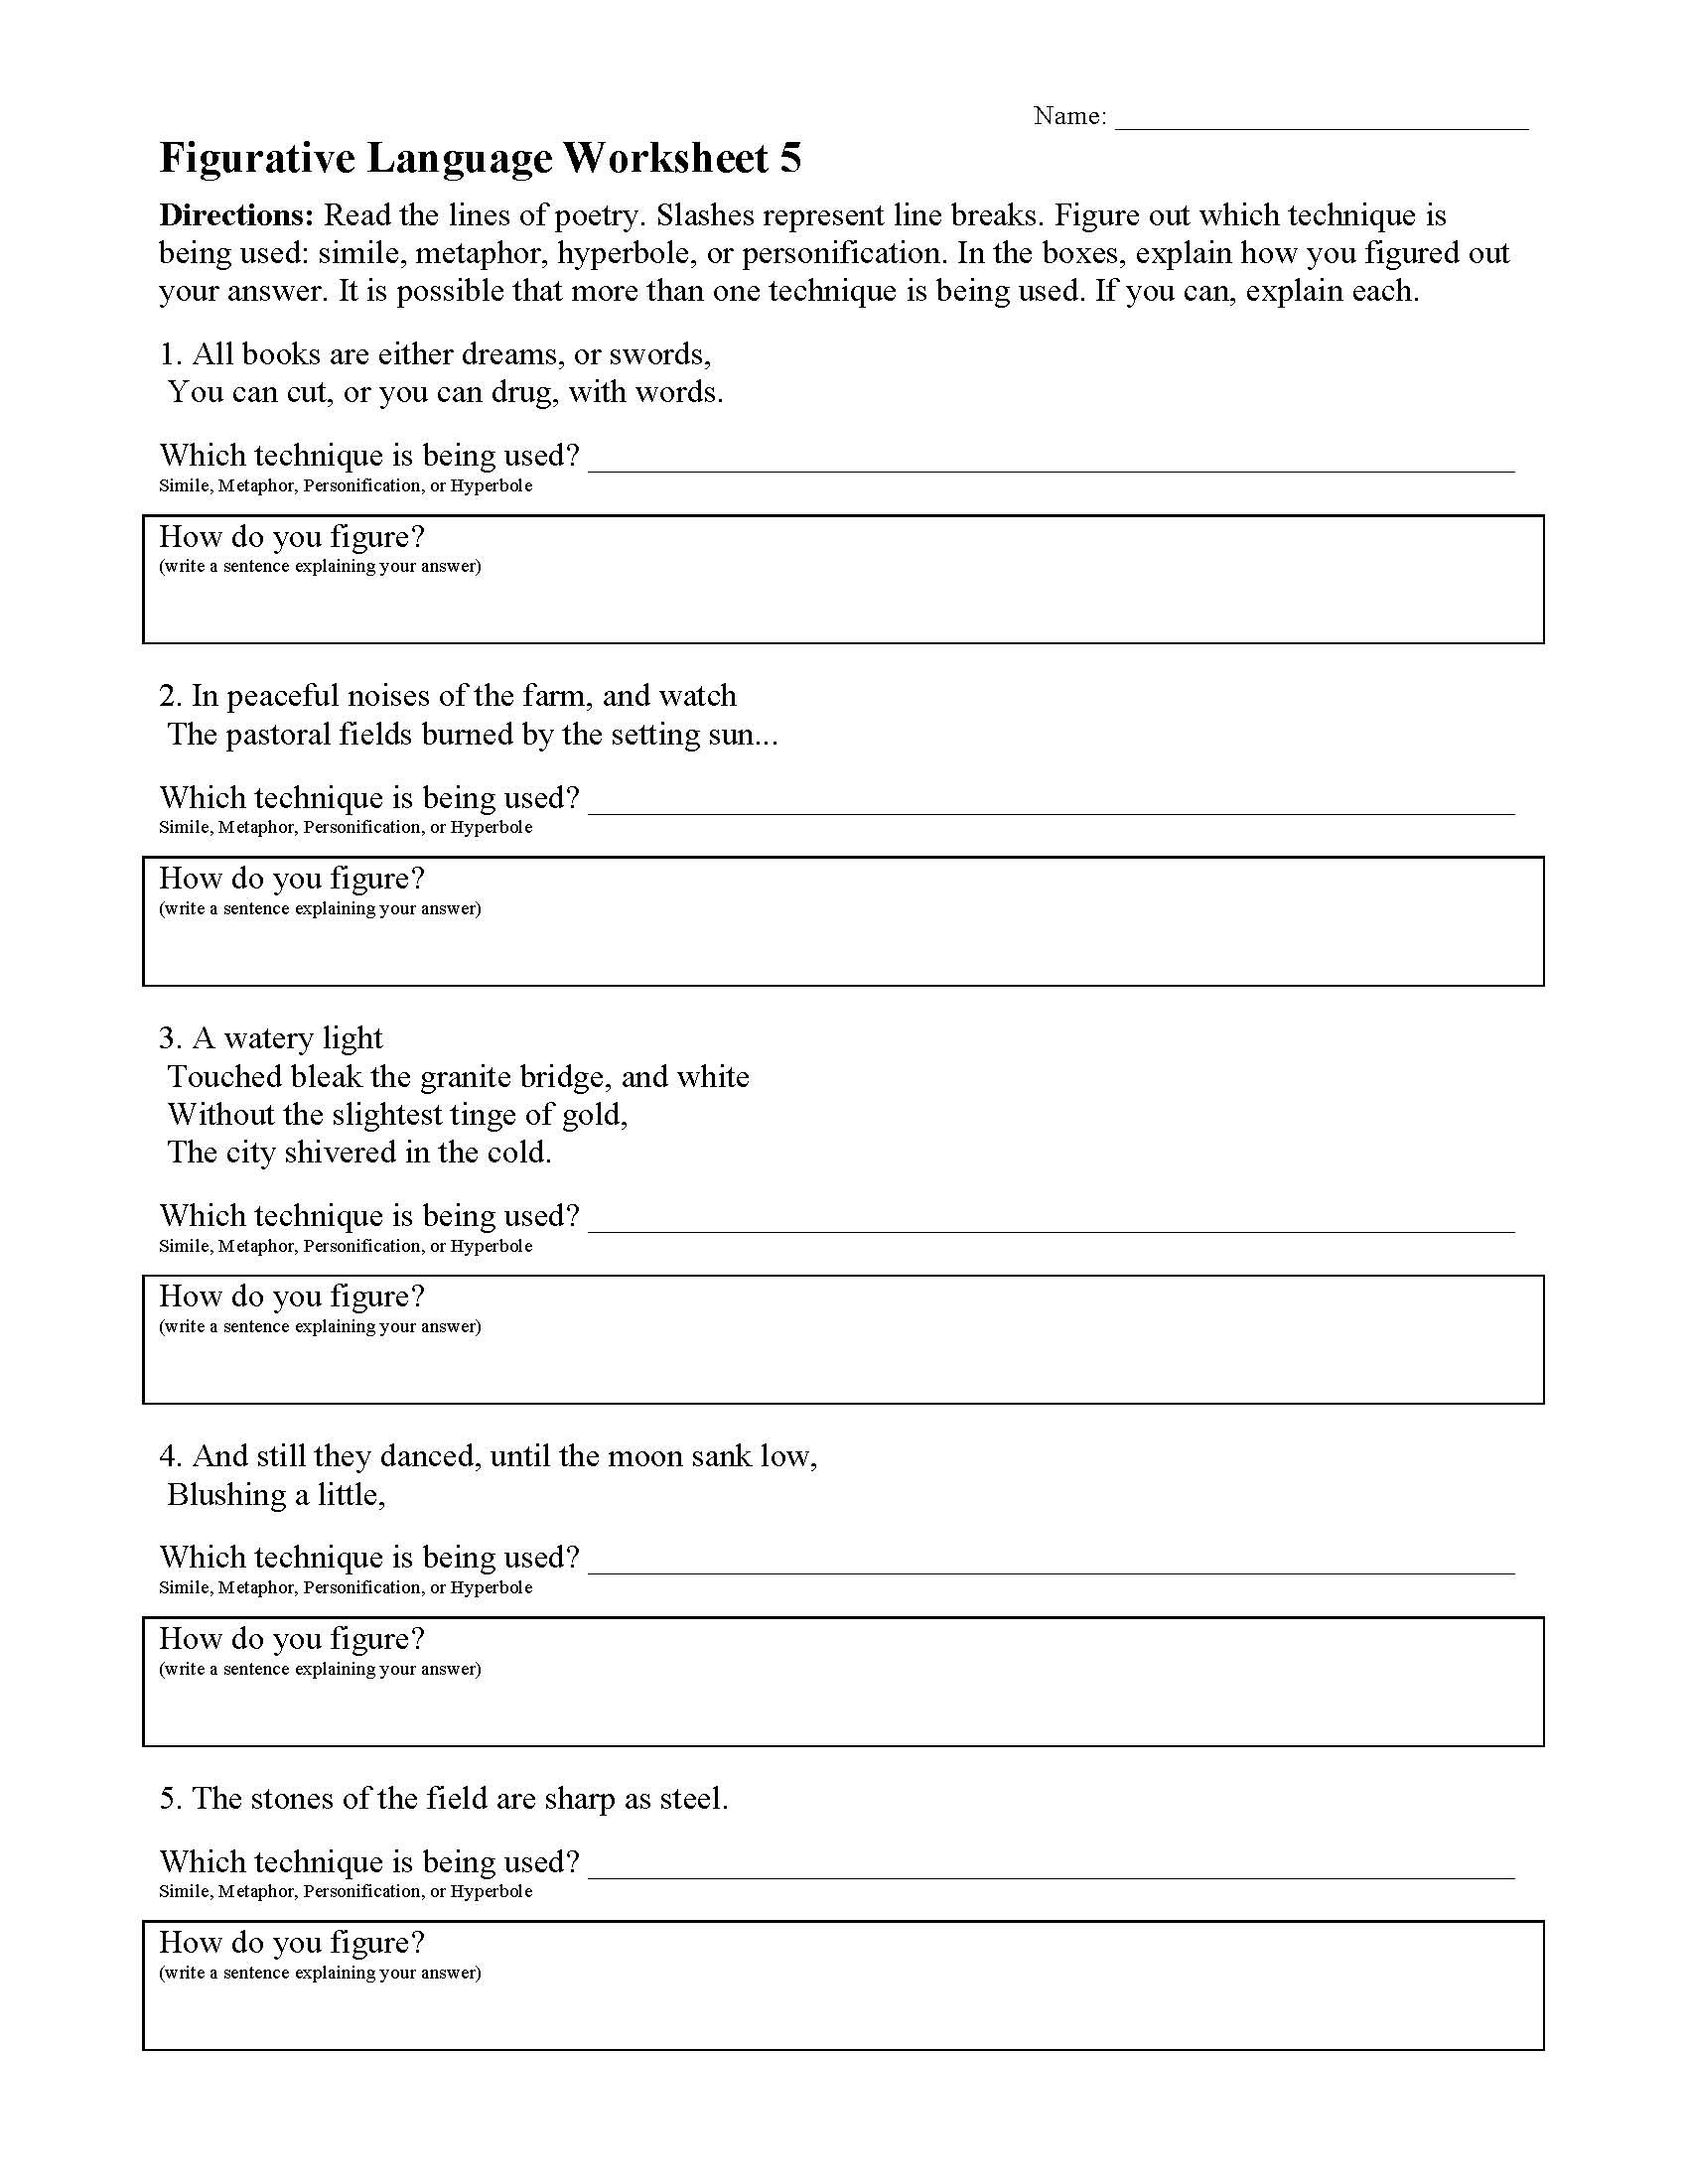 Figurative Language Worksheet 5